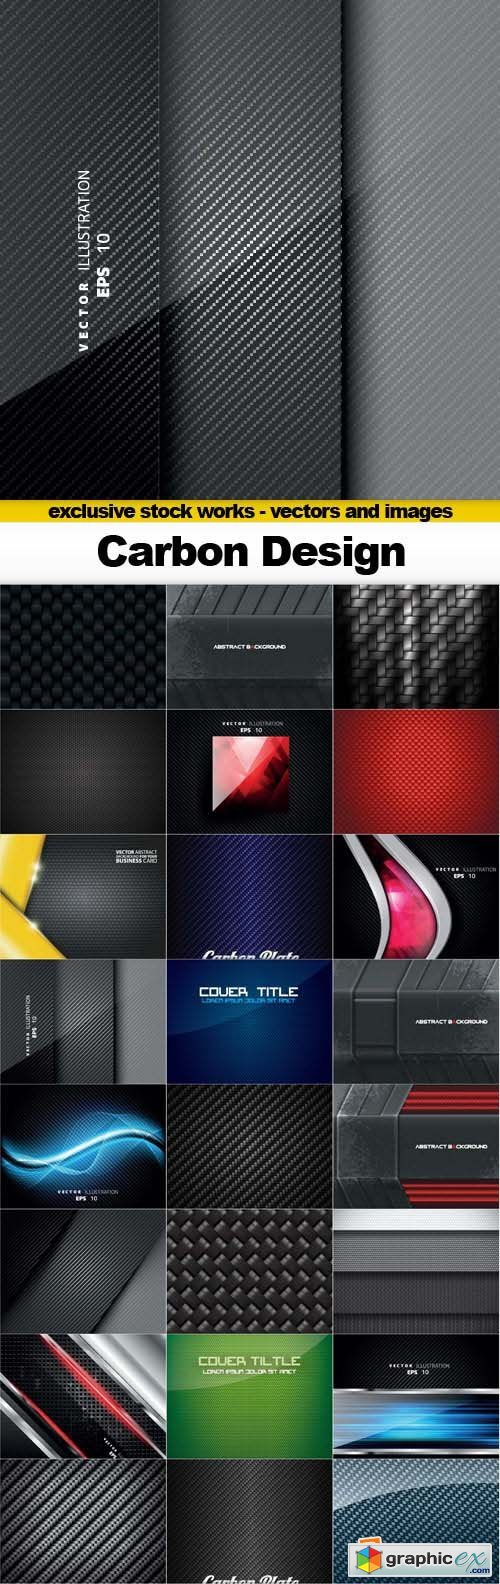 Carbon Design - 24x EPS